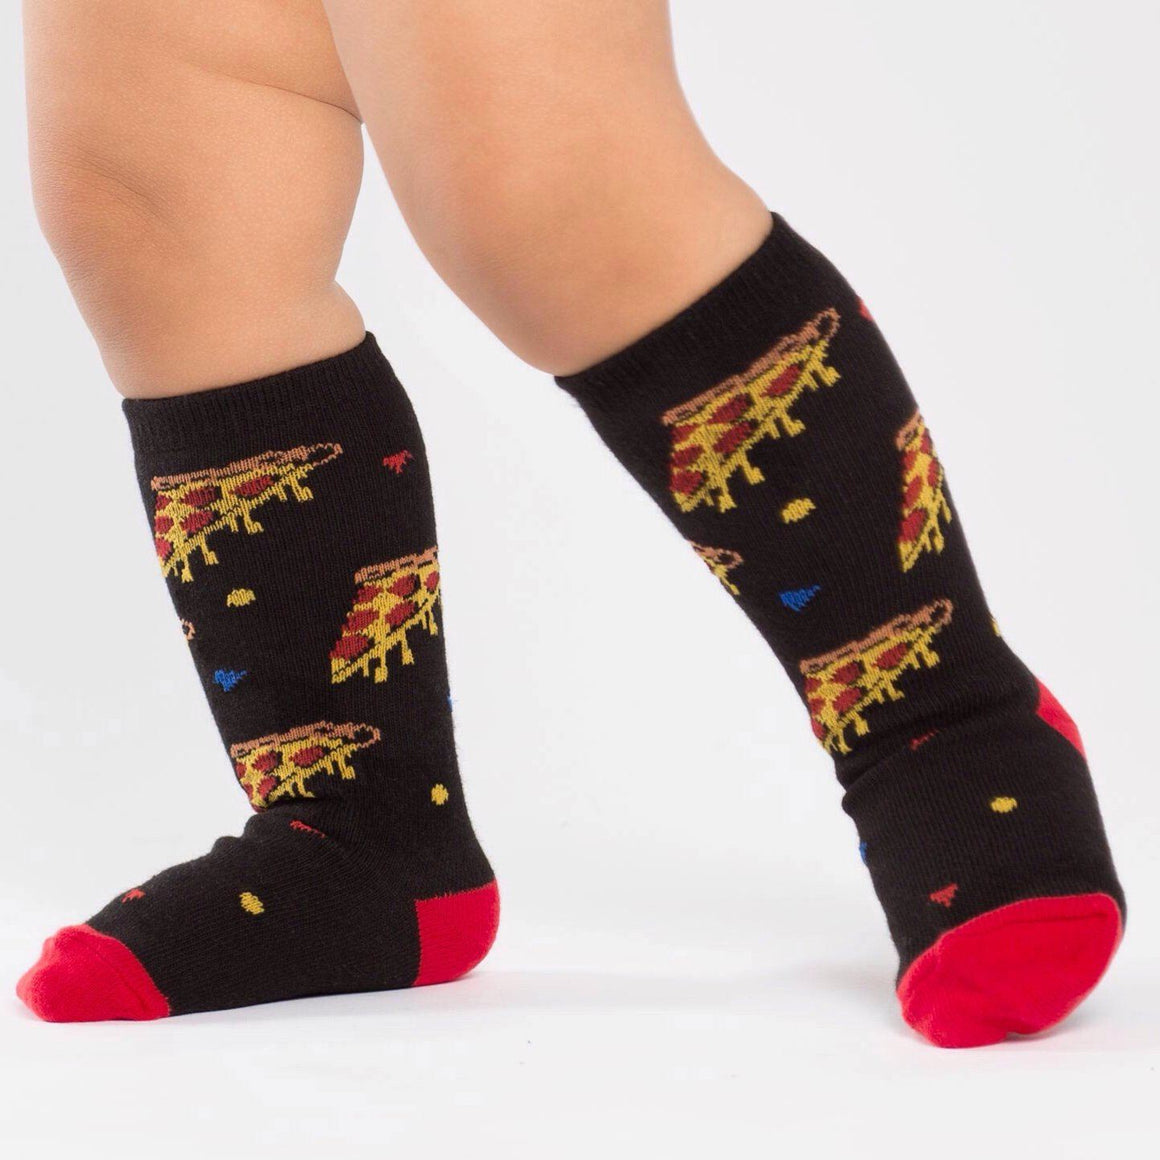 SOCKS - TODDLER KNEE PIZZA PARTY